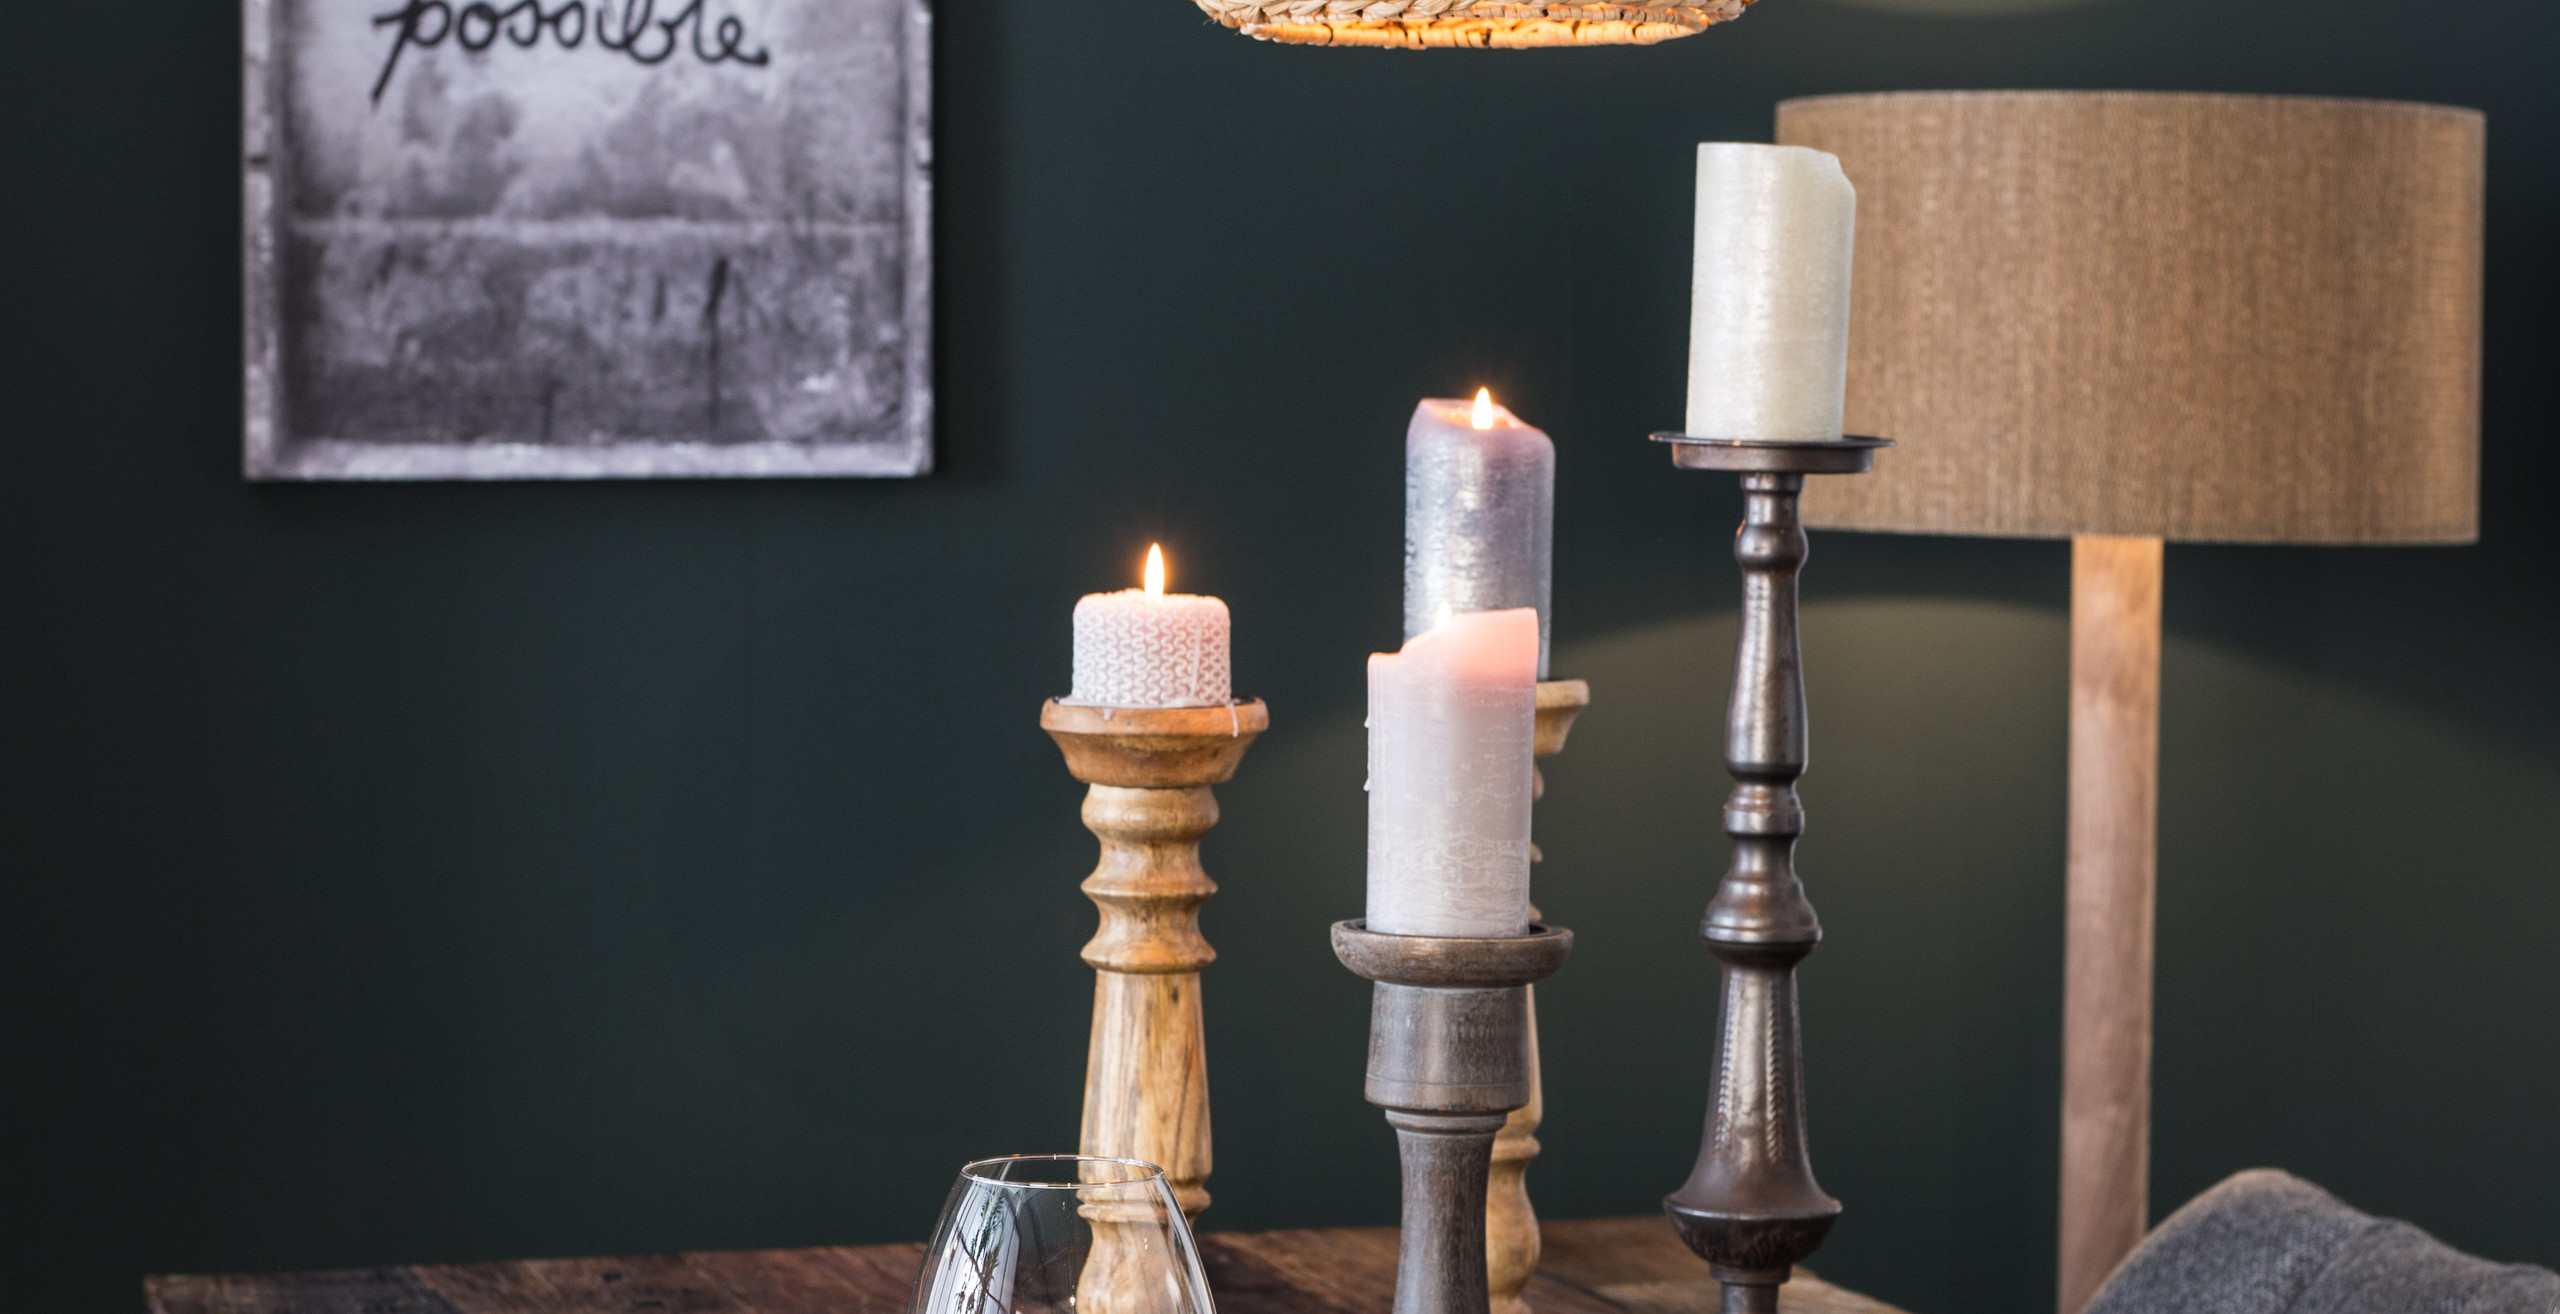 Woven Wood Pendant Lamp with Candle Holders on Table and Wall Hanging Tout sEt Possible